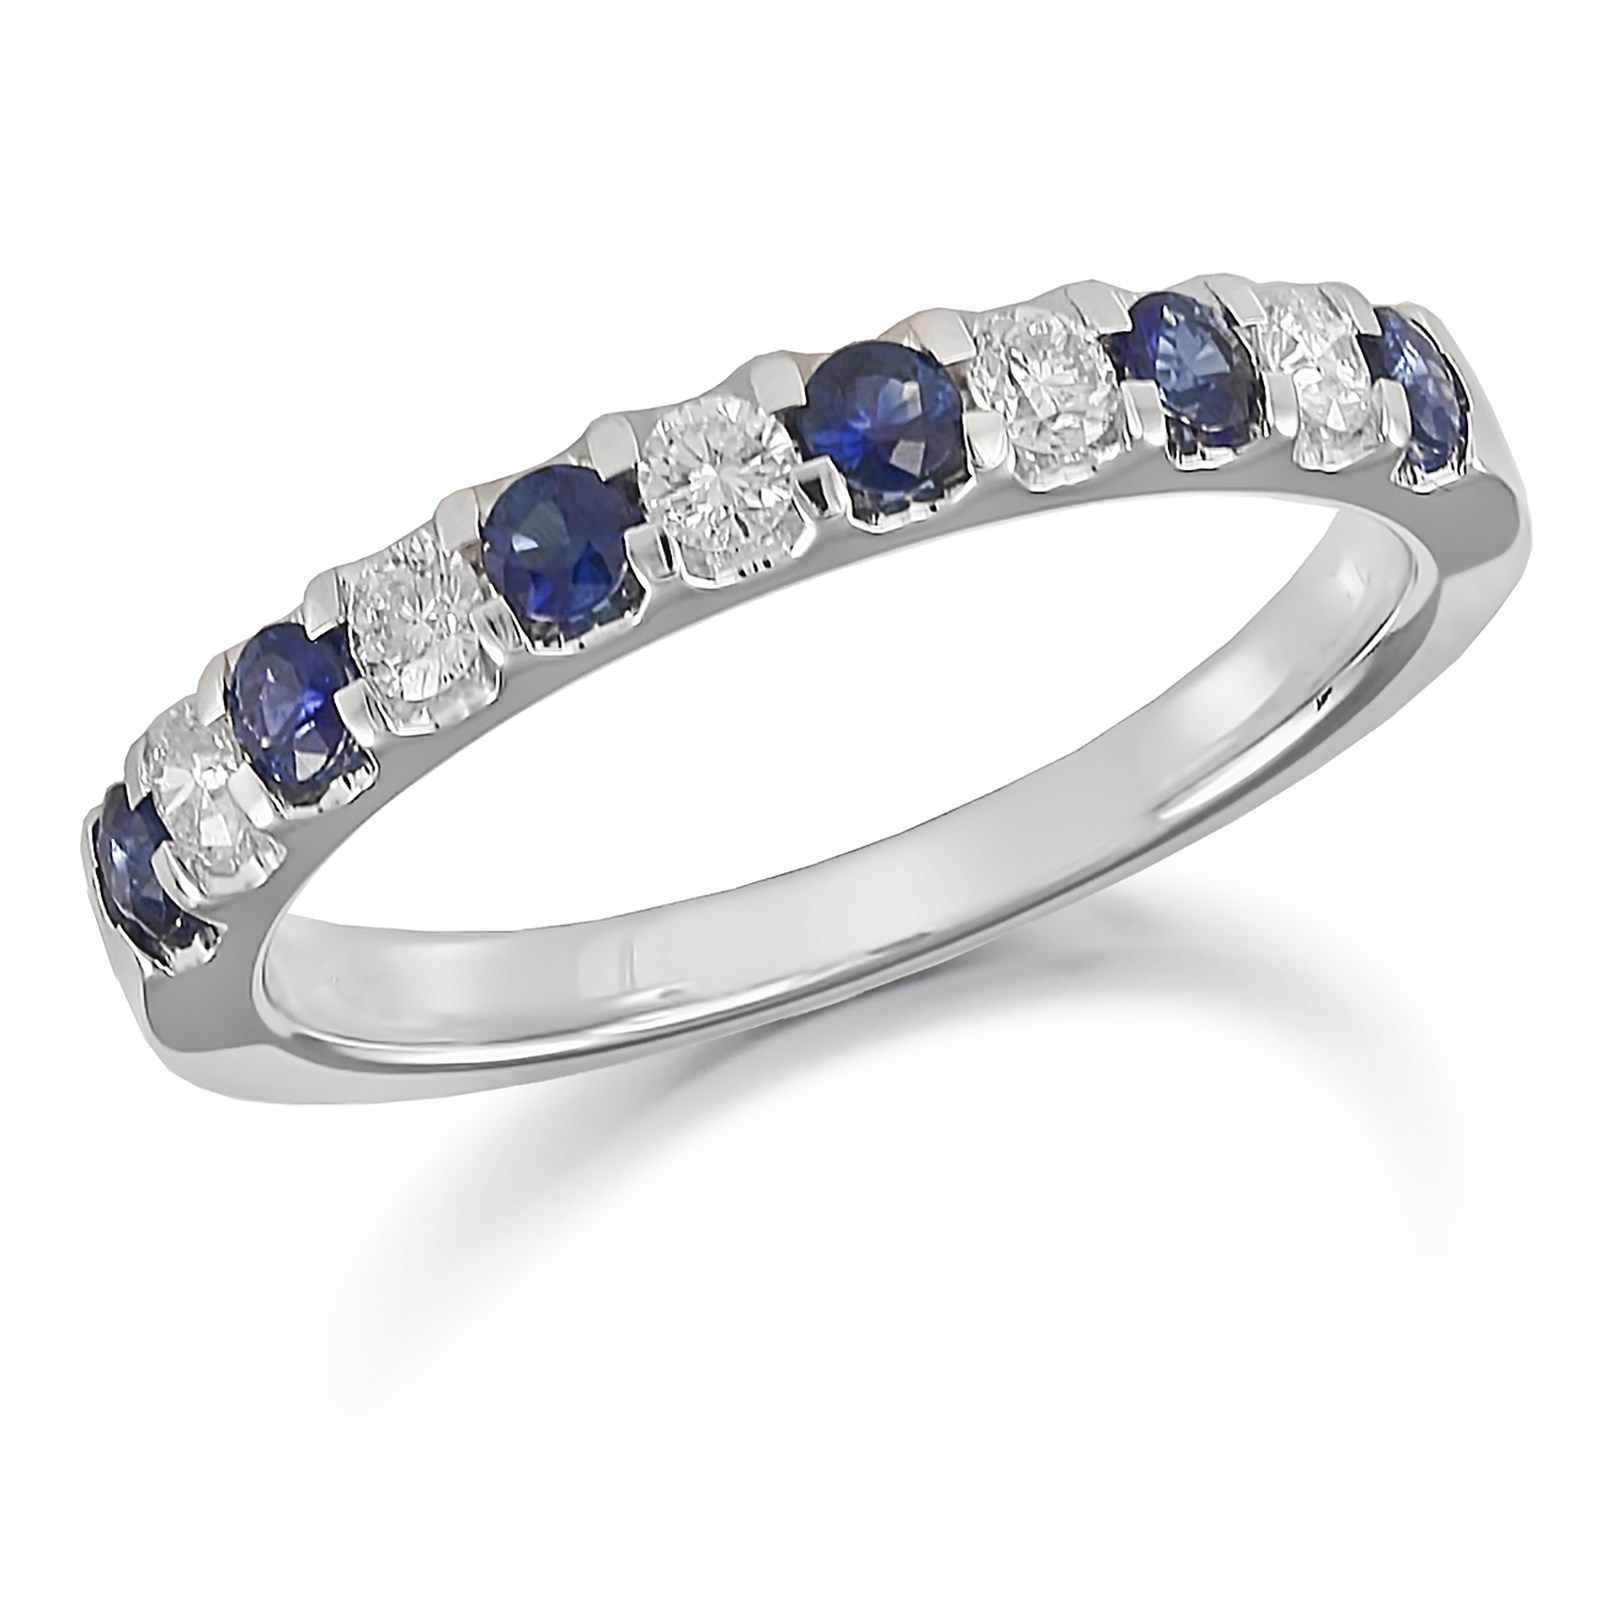 signature sapphire bands wings eternity with and band collections diabagetwith baguette diamond bridal anniversary